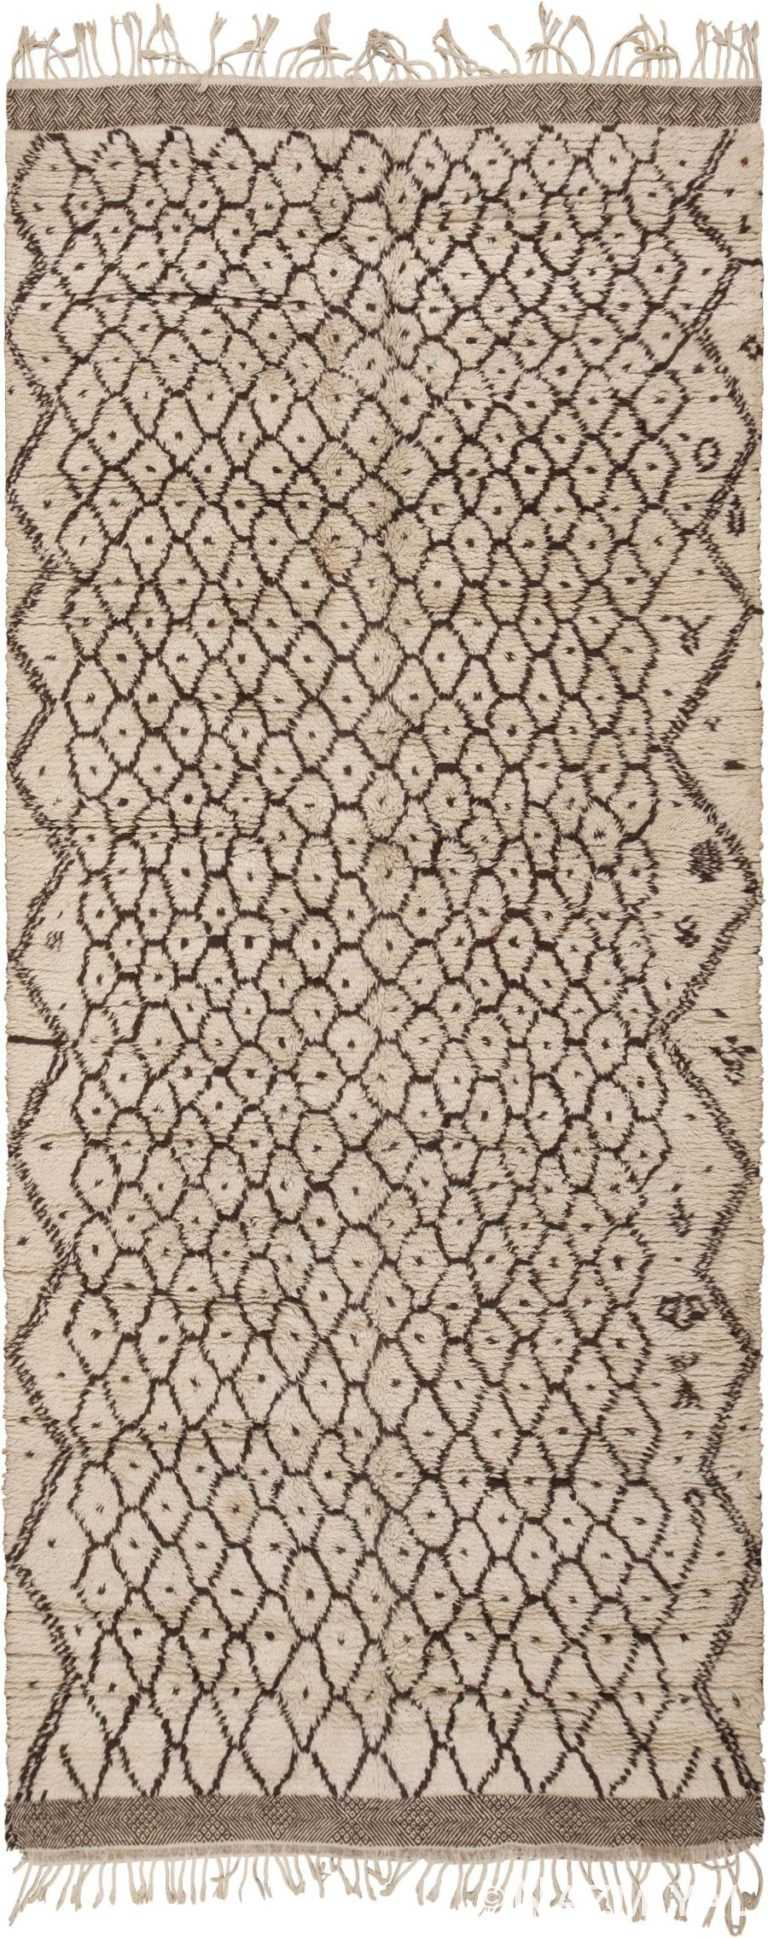 Beni Ourain Vintage Moroccan Rug 46021 from Nazmiyal Antique Rugs in NYC